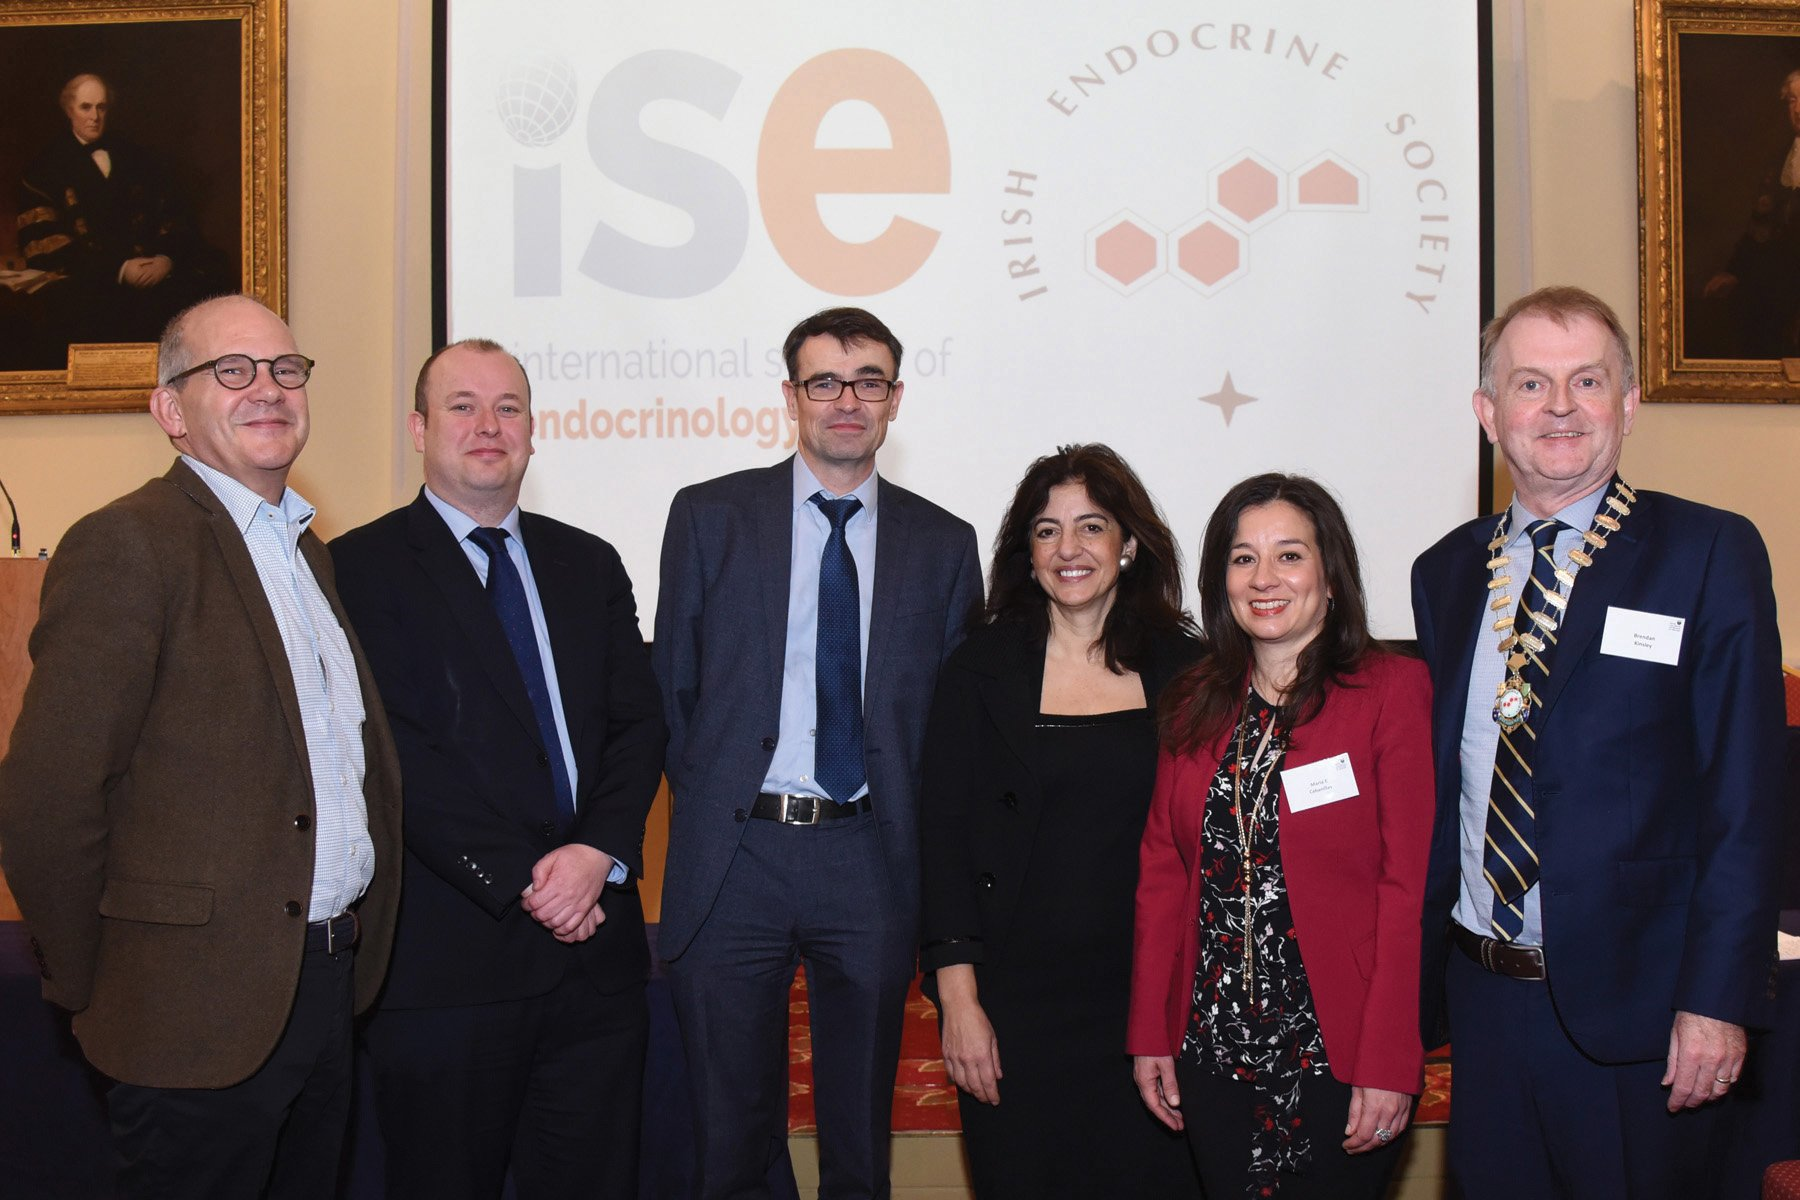 Irish Endocrine Society and International Society of Endocrinology Joint Symposium